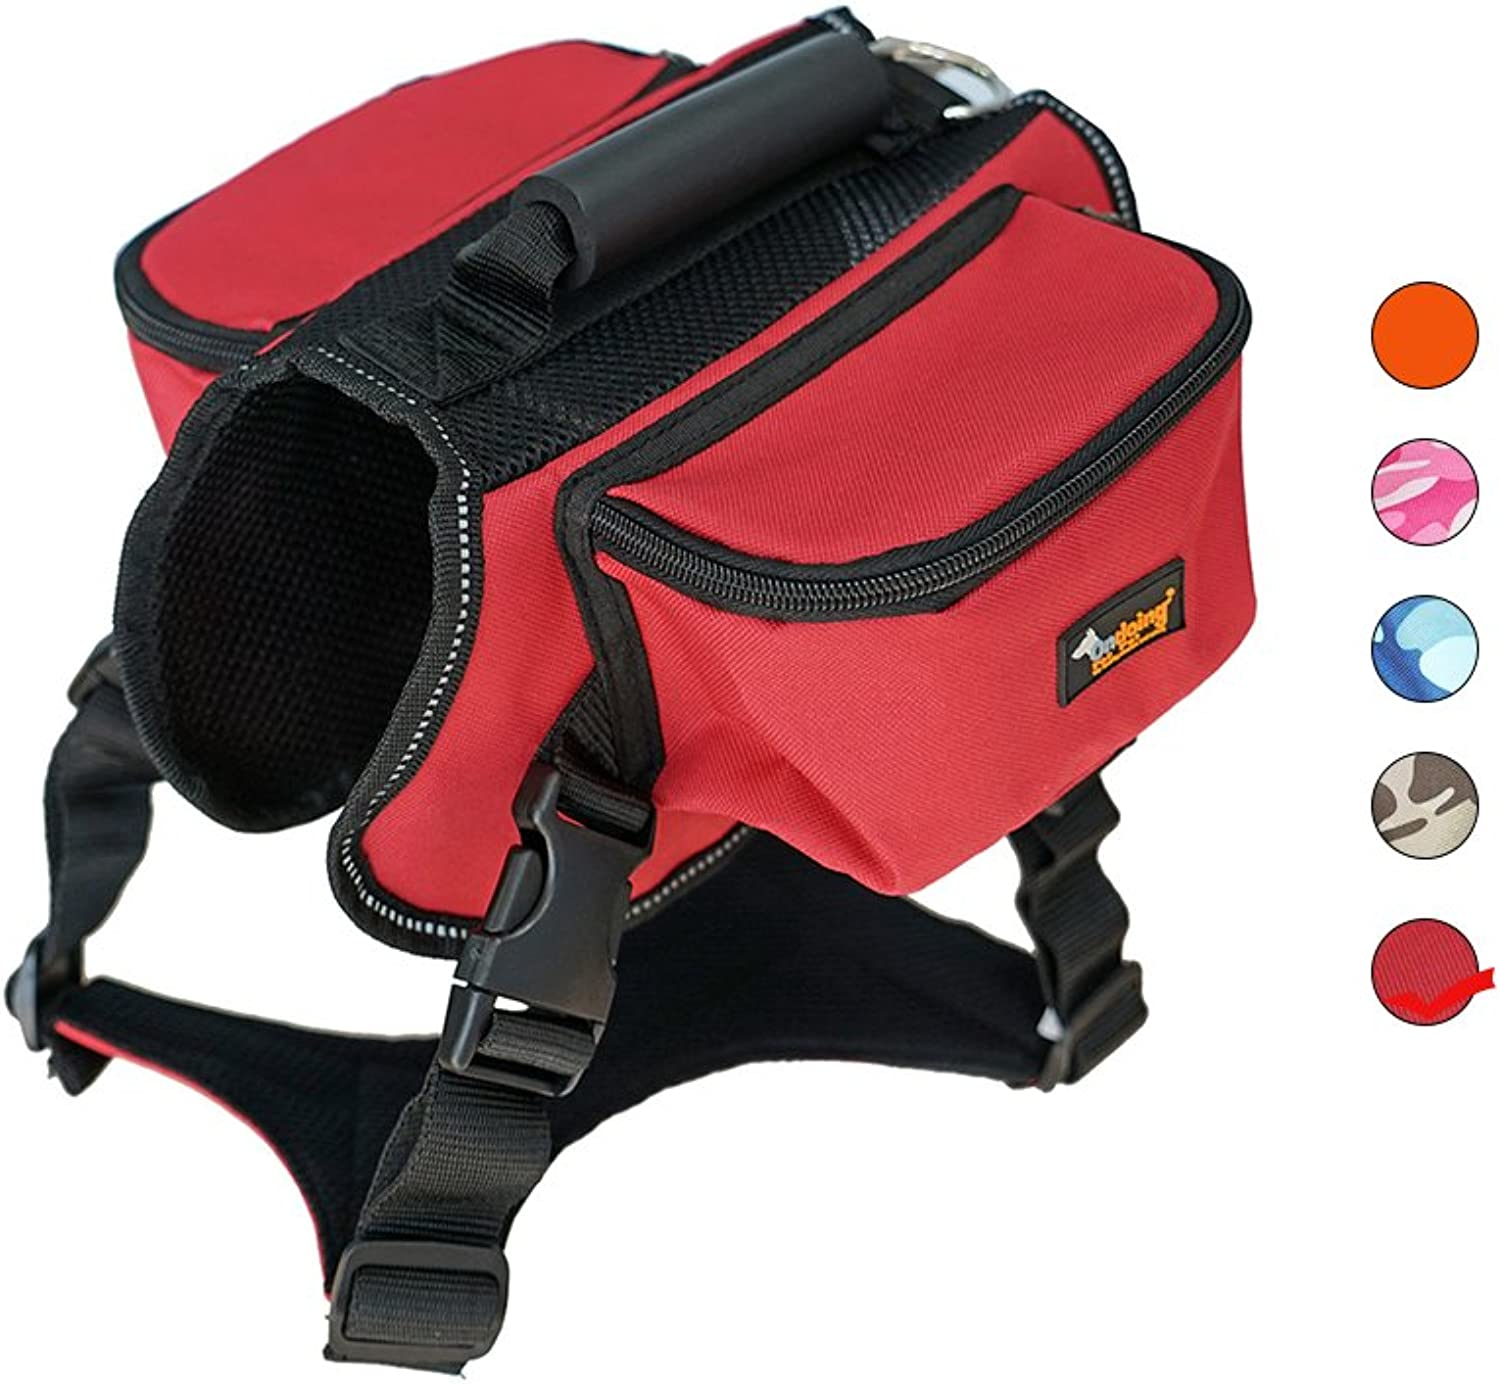 Dog Carried Saddle Backpack Saddle Hiking Travel Camping Outdoor Harness Backpack for Medium Large Dog (L, Red)